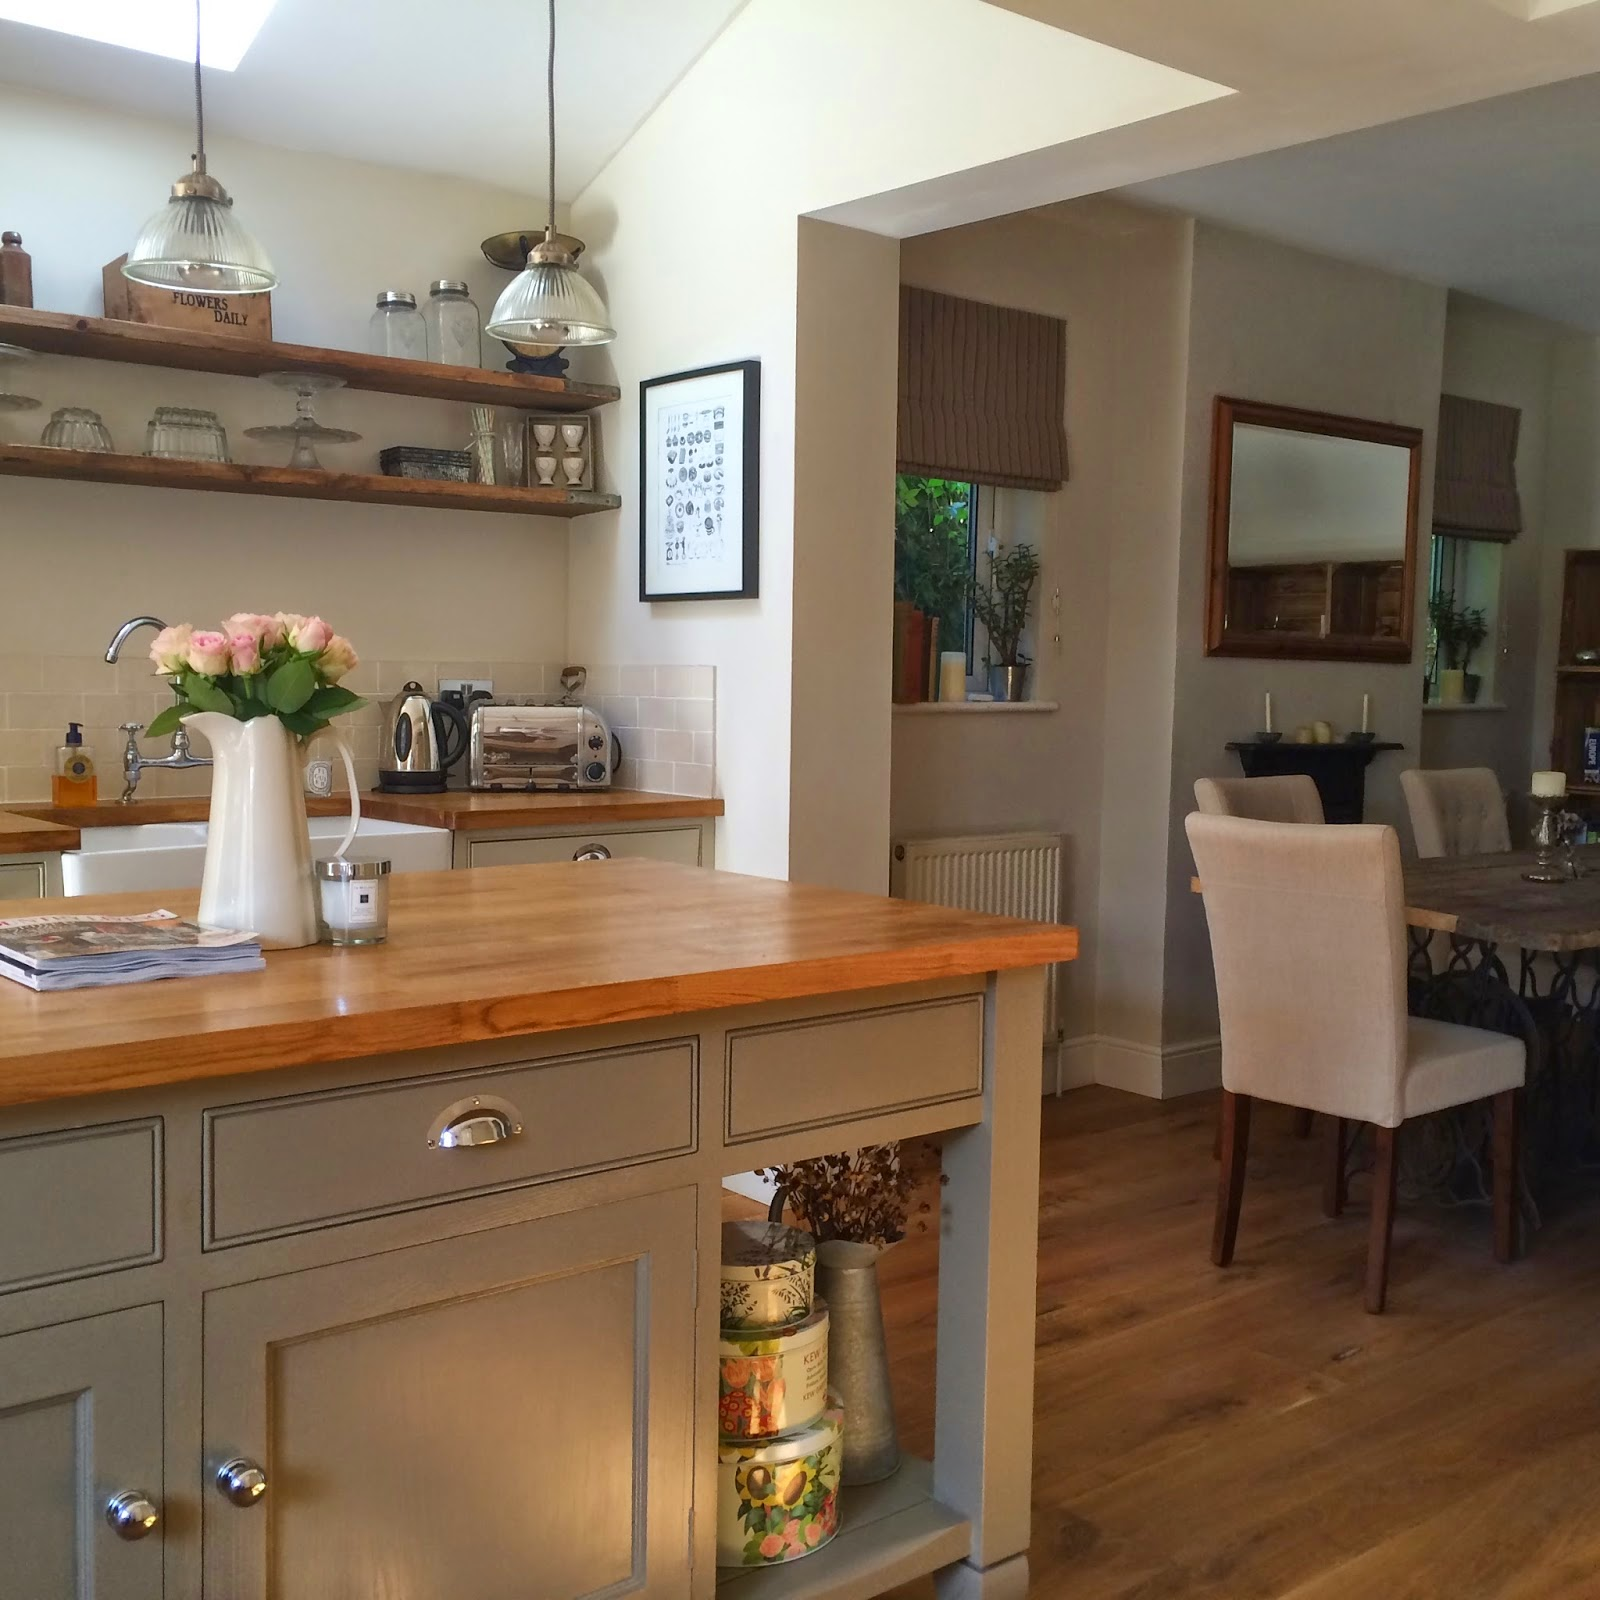 Kitchen Dining Room: Our Kitchen Extension And Transformation